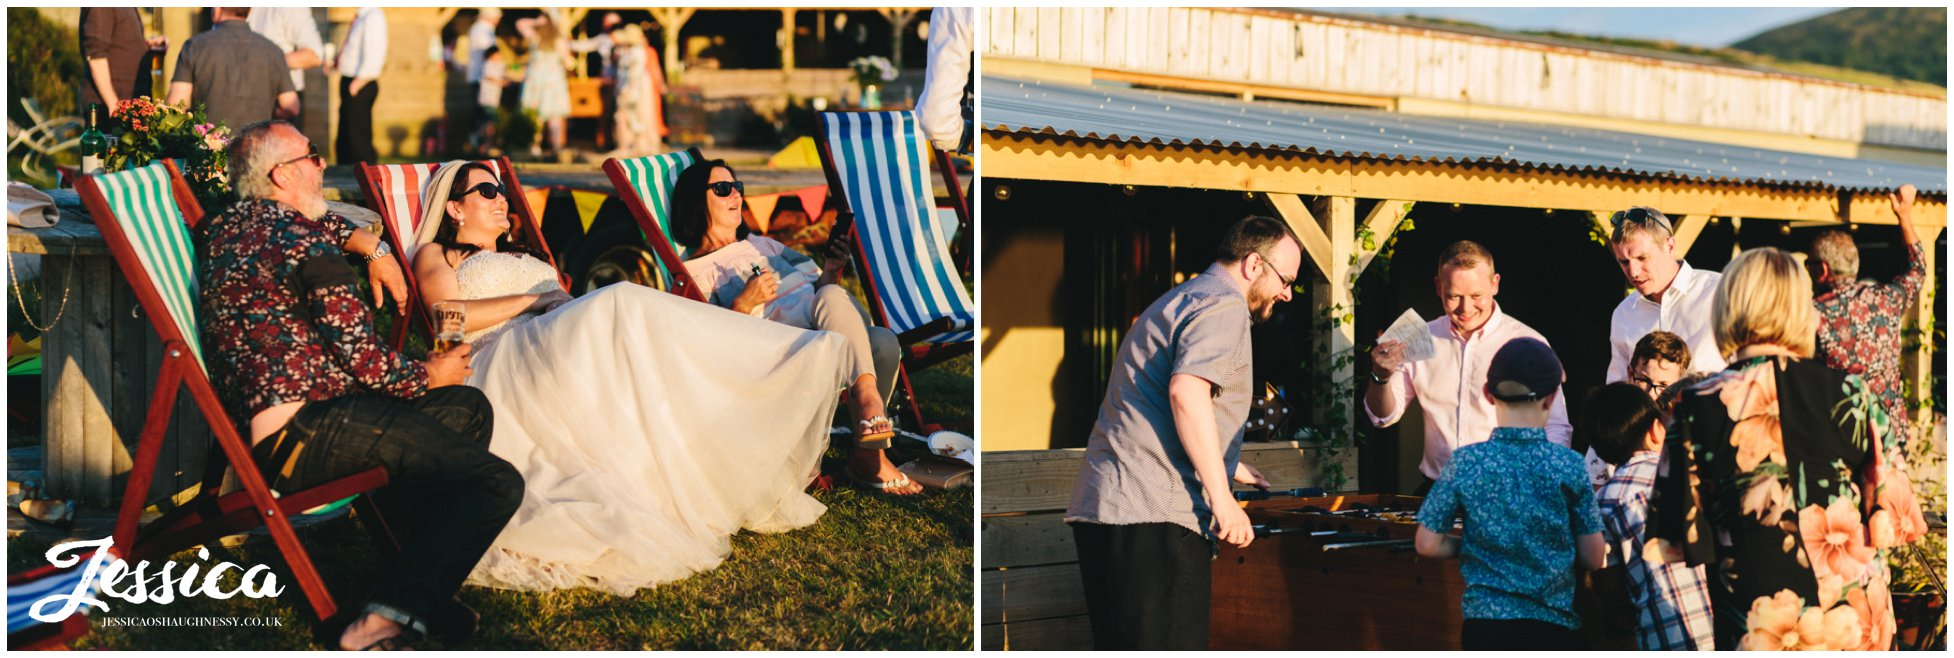 the bride chills out with her friends on the deck chair